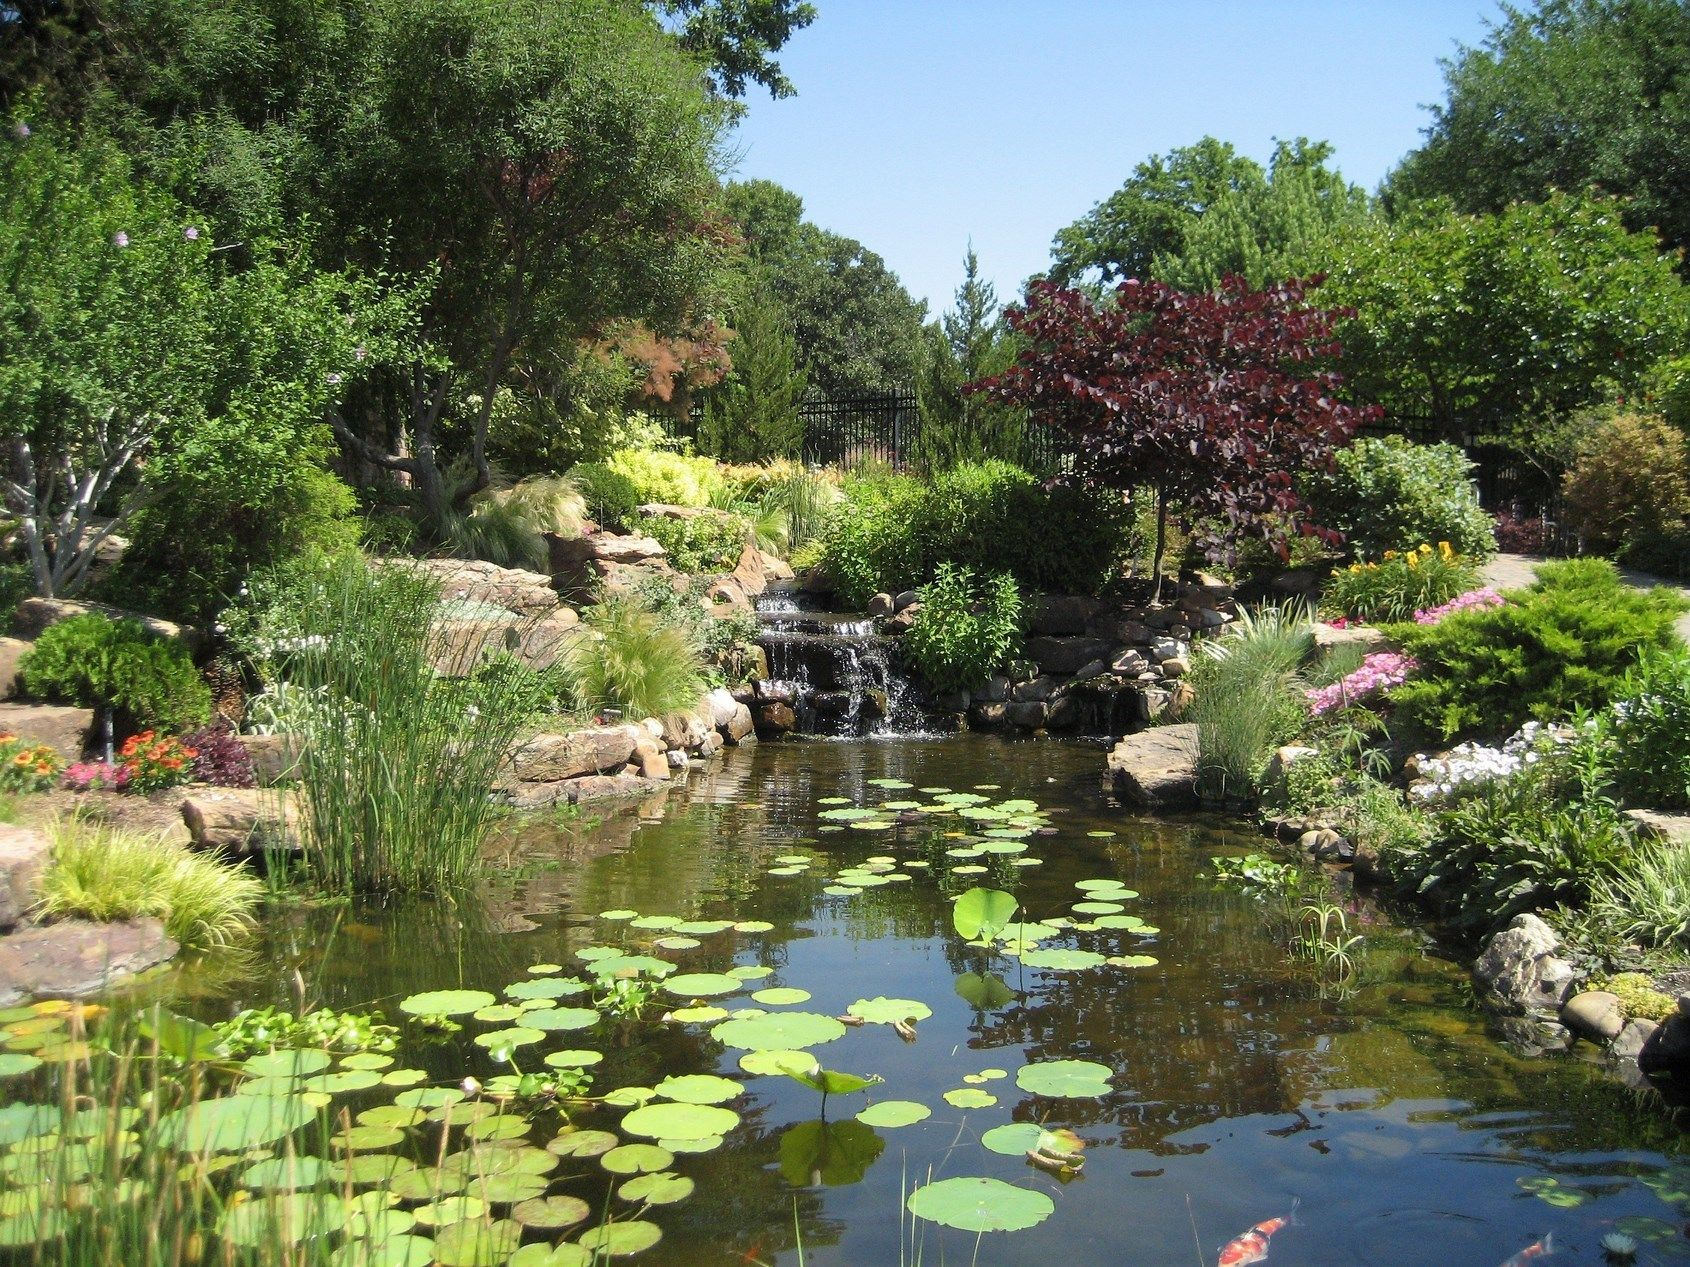 Linnaeus Teaching Garden | Tulsa Garden Center. Free And Open To The Public  Tuesday Through